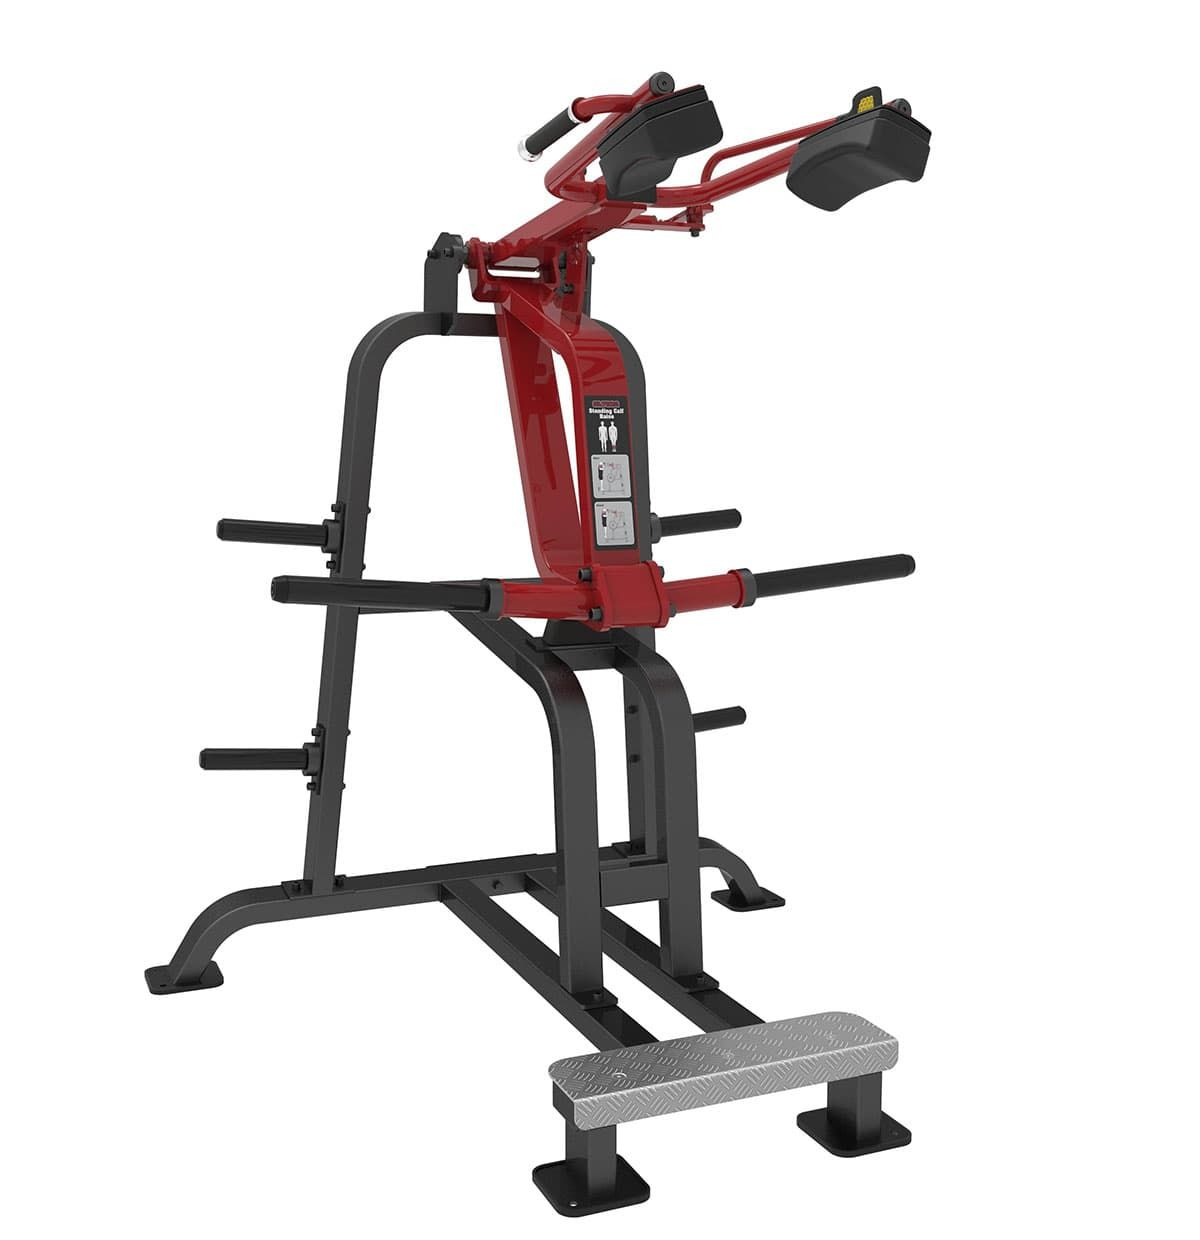 Икроножные стоя Aerofit Professional Impulse Sterling SL7032. Фото N2